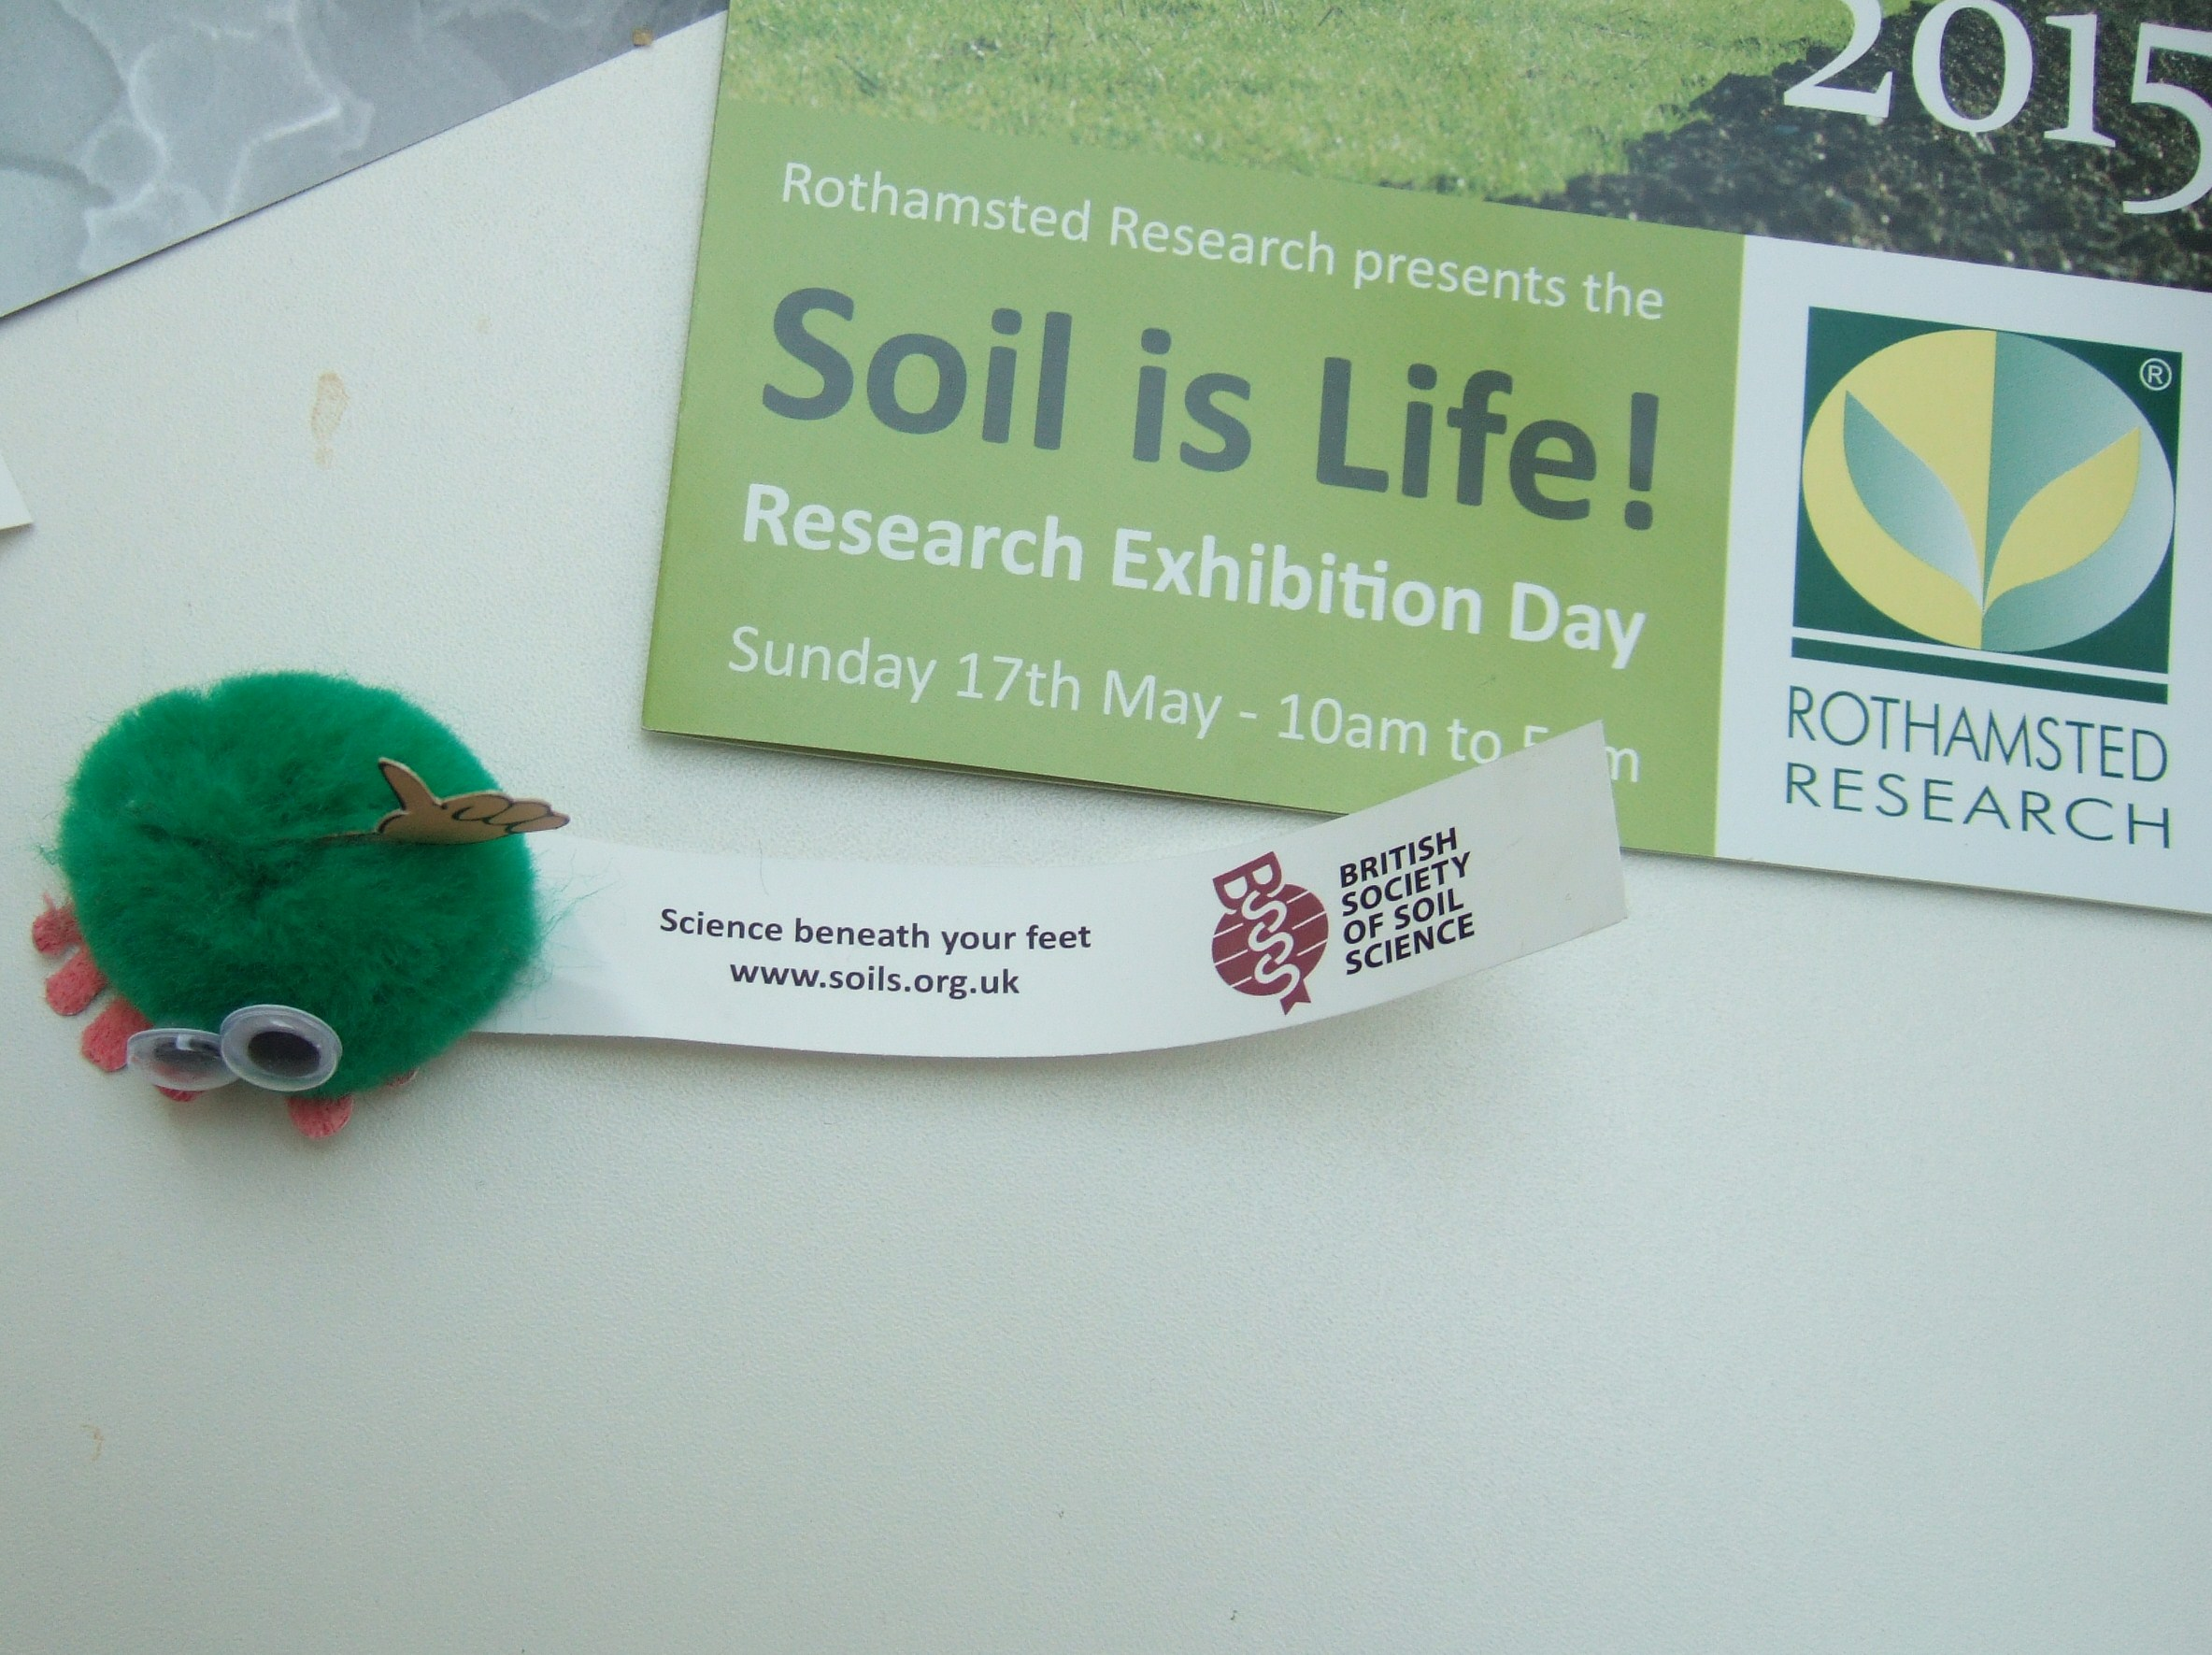 Soil is Life! flyers in Rothamsted cafe